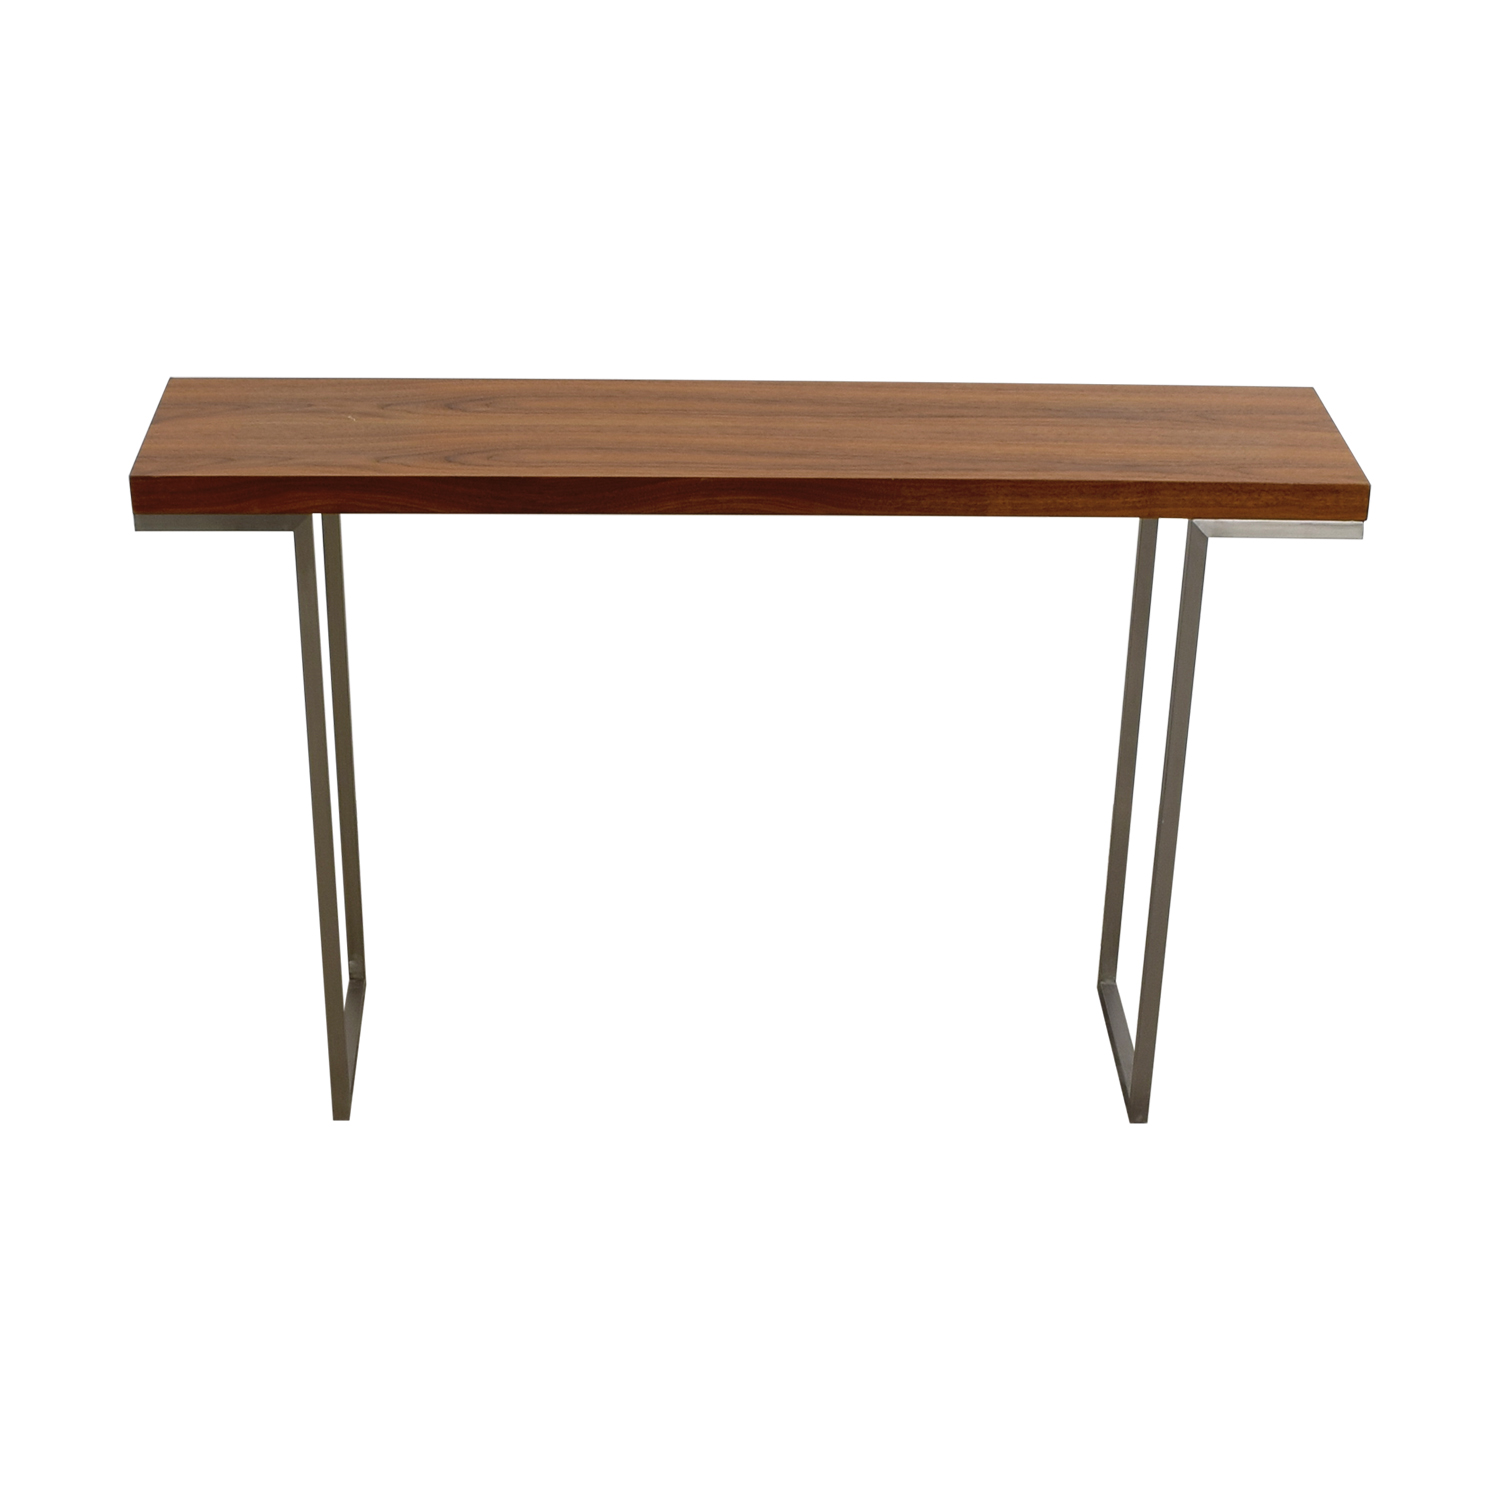 buy Moss Home Collection Moss Home Collection Wood Repetir Console online